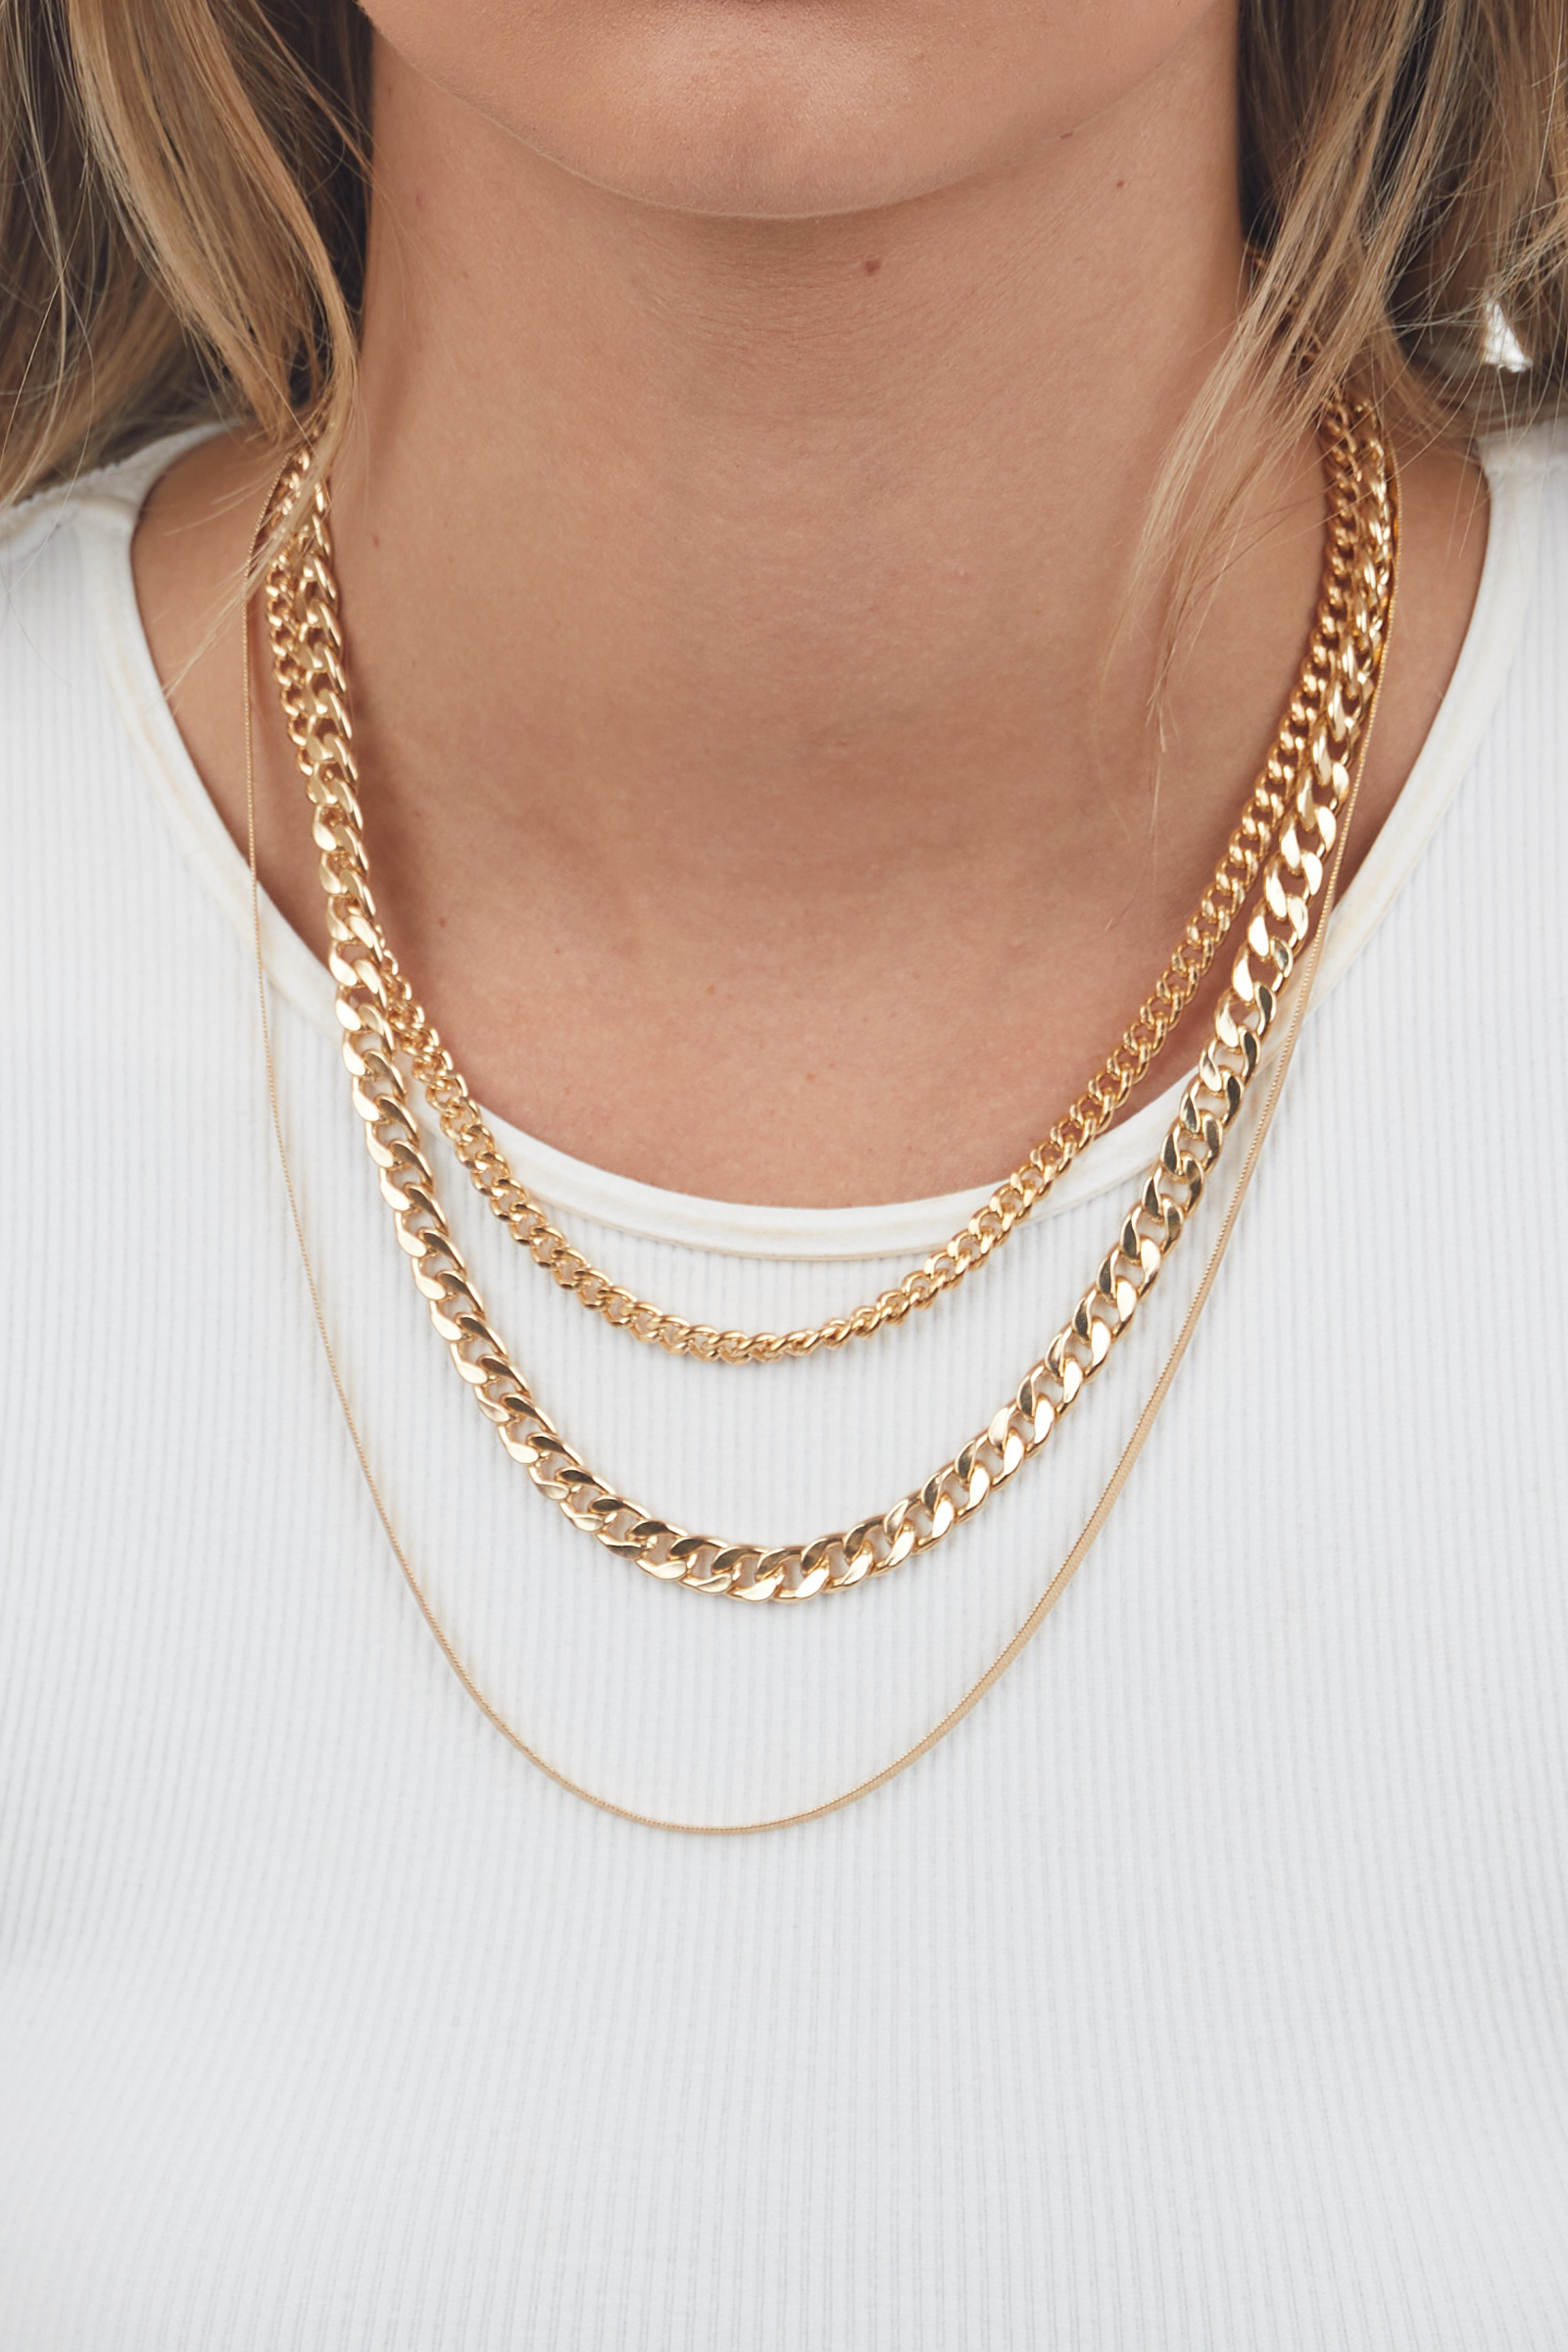 Gold Layered Flat Link Chain Necklace